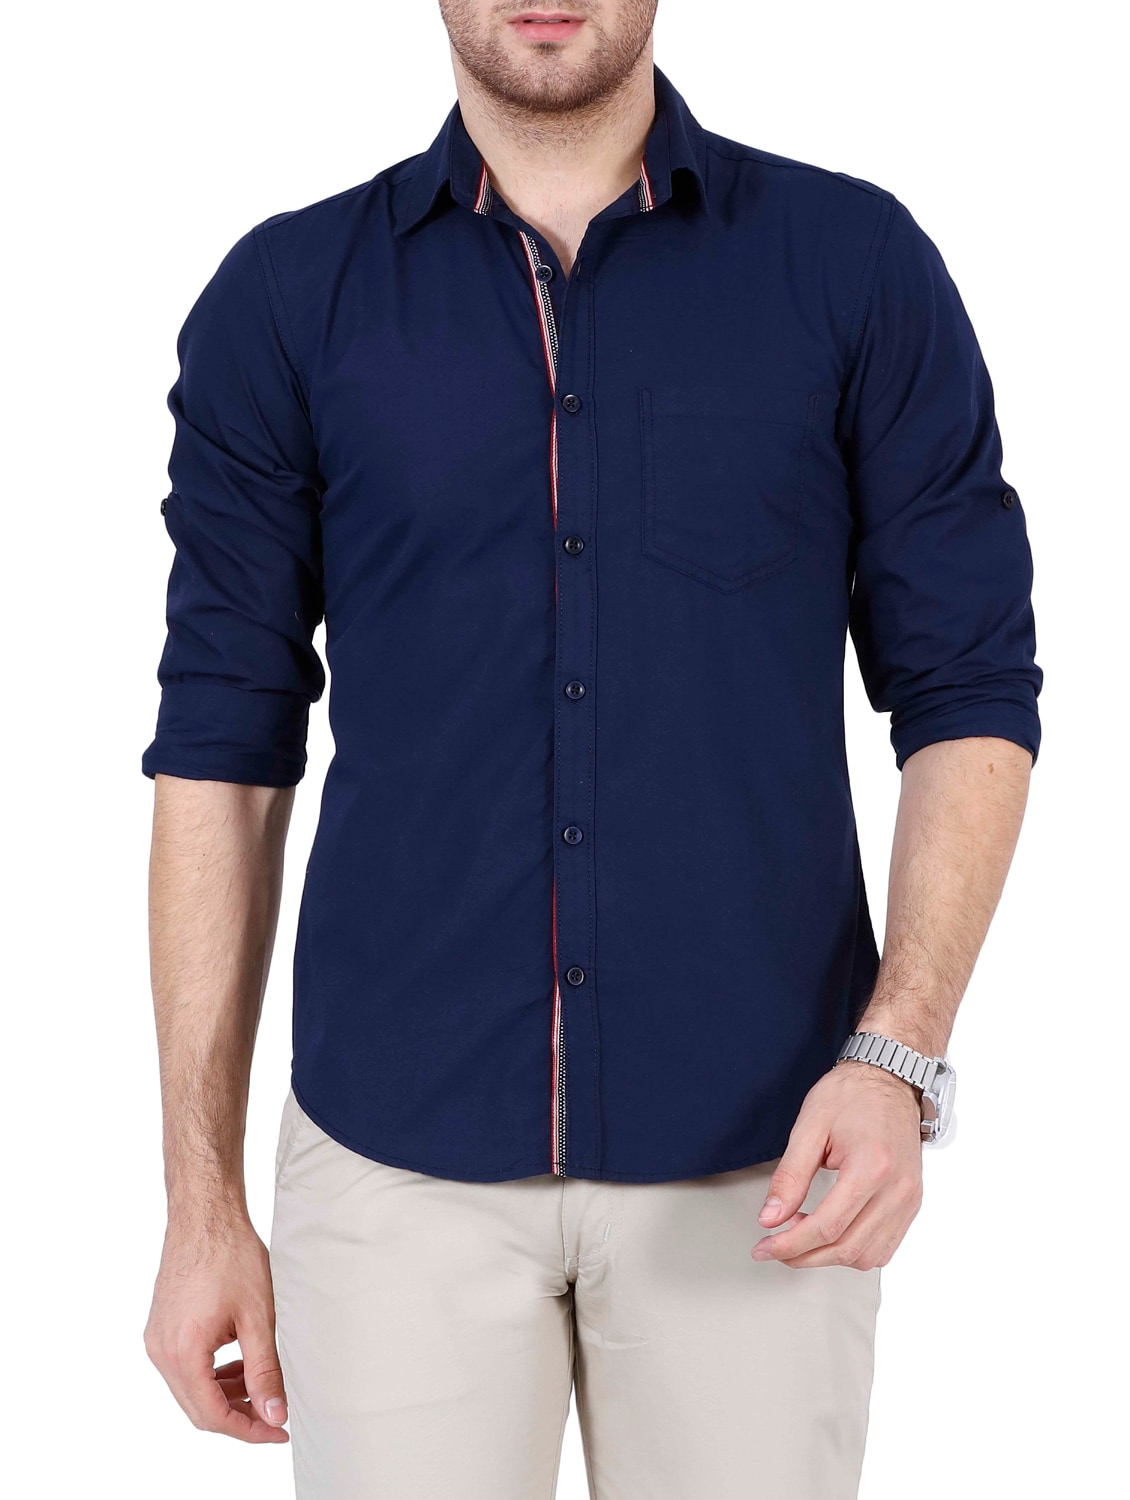 how to wear navy blue shirt